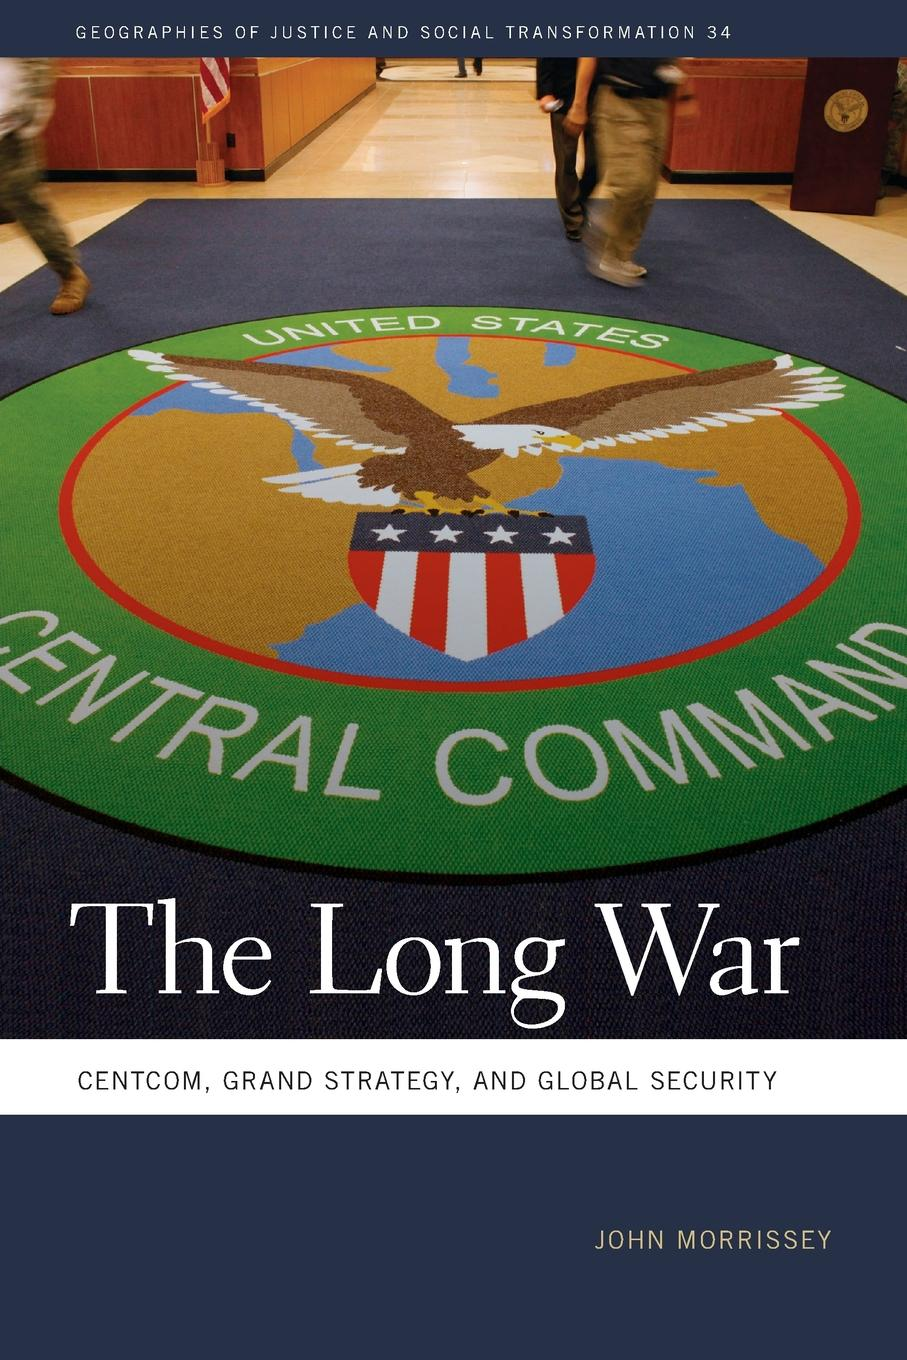 John Morrissey Long War. Centcom, Grand Strategy, and Global Security marin katusa the colder war how the global energy trade slipped from america s grasp